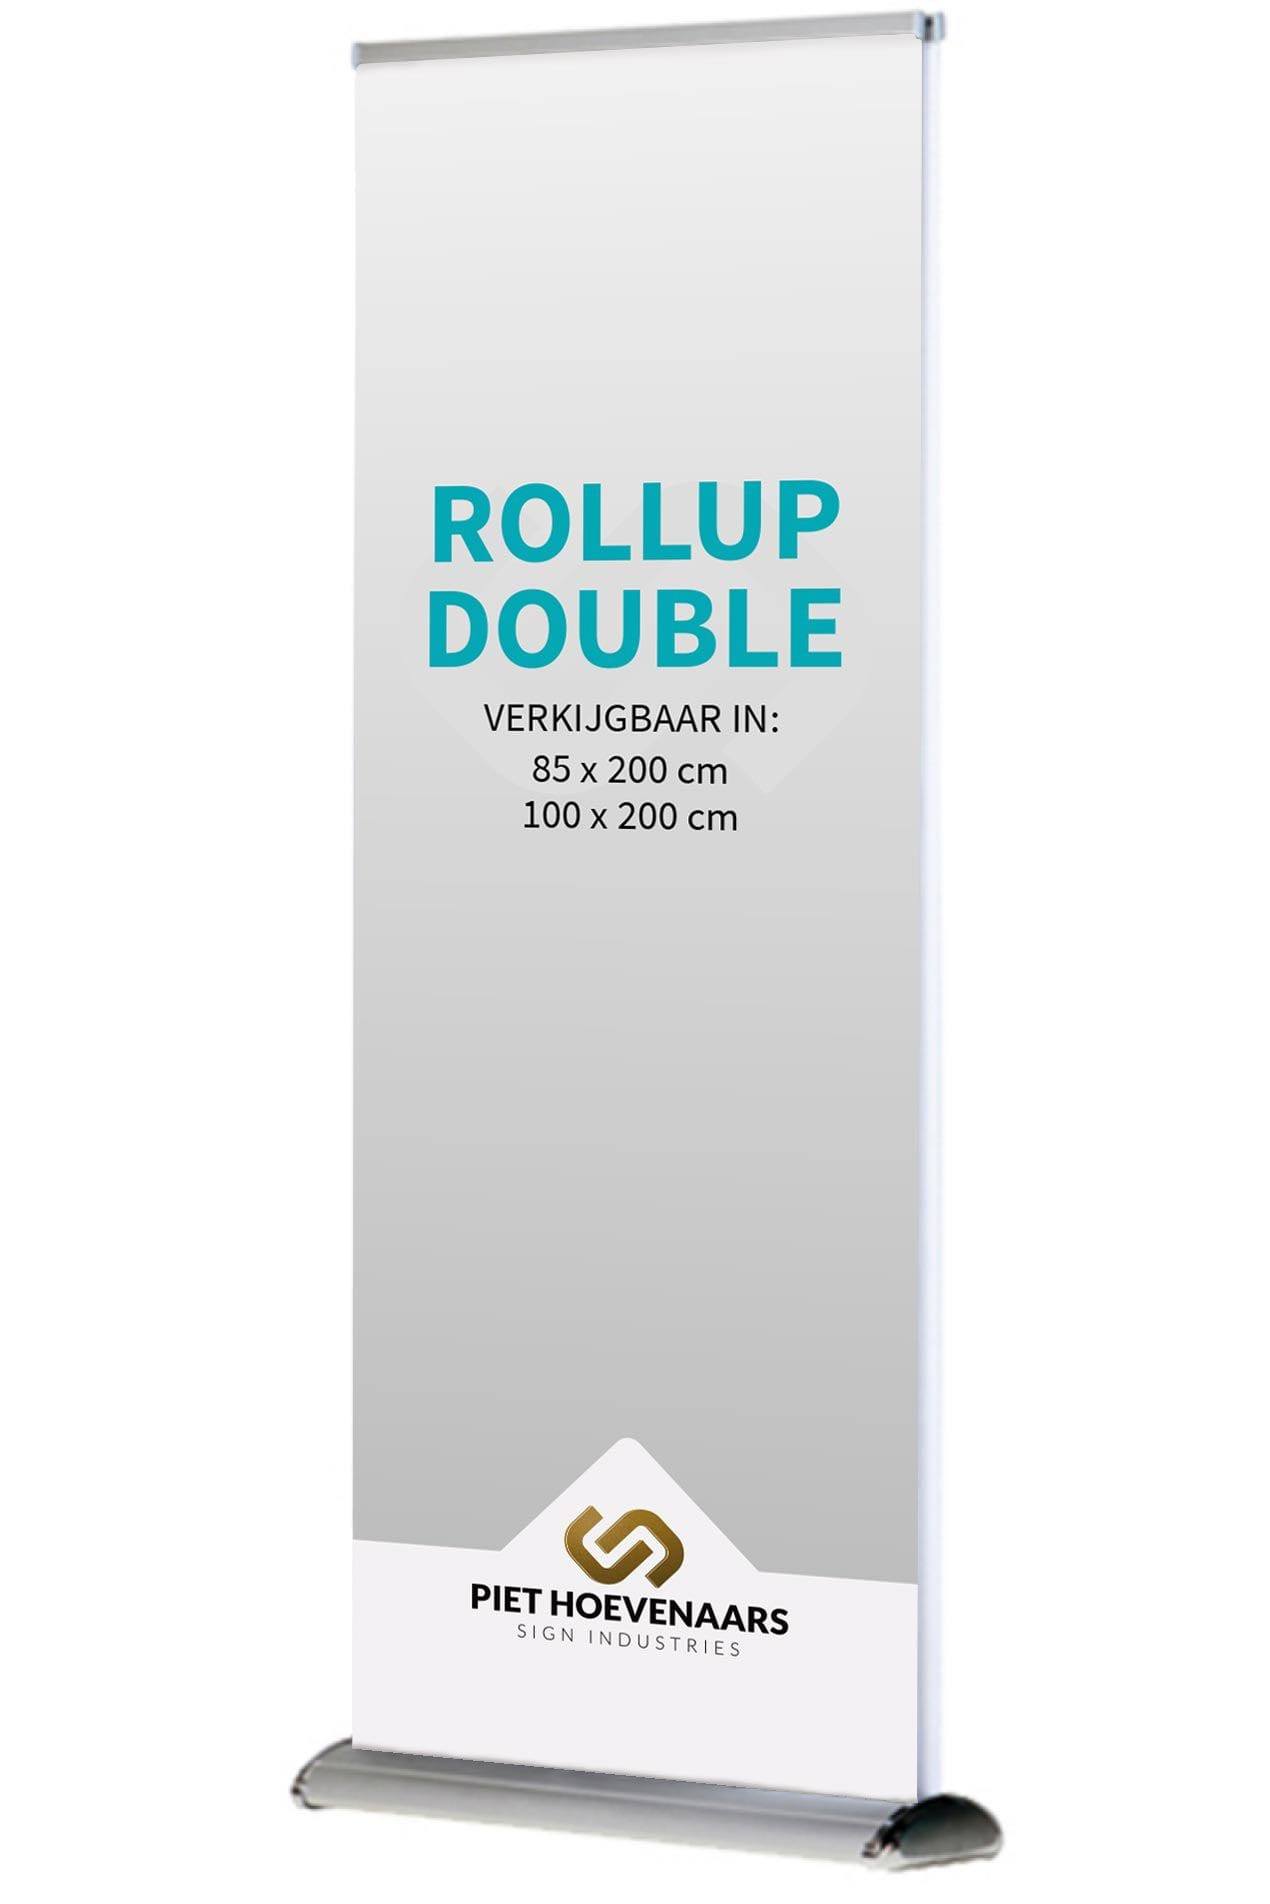 Rollup Double